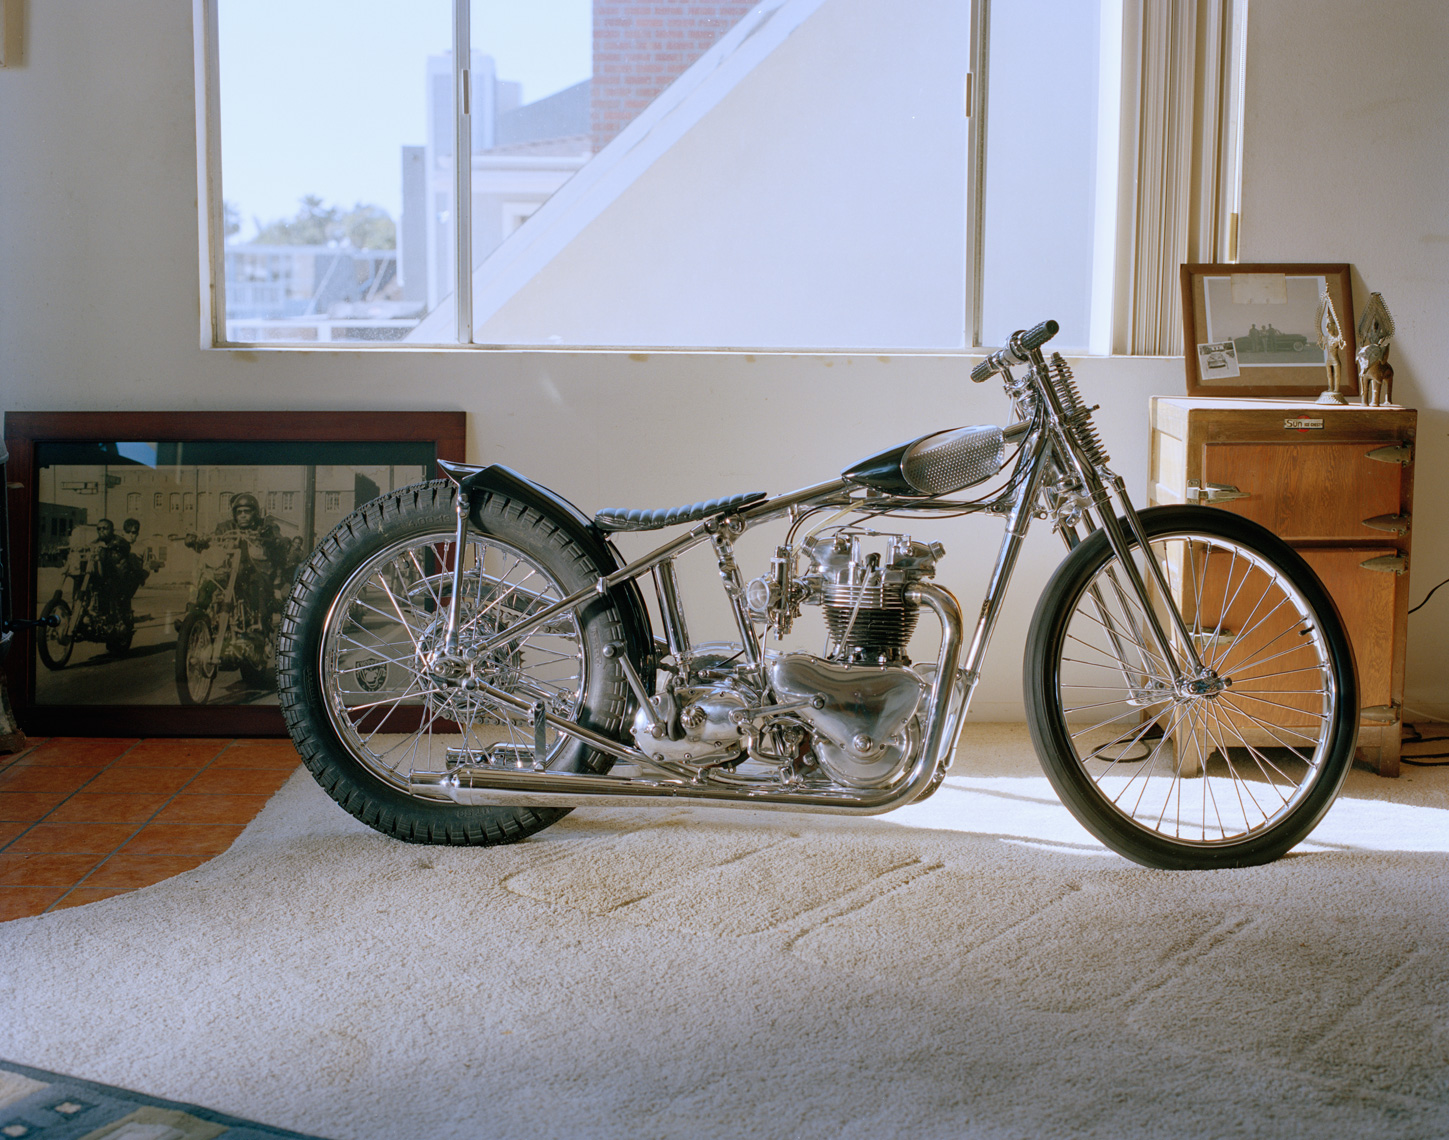 mark-drews-bike-in-living-room-01-2011.jpg